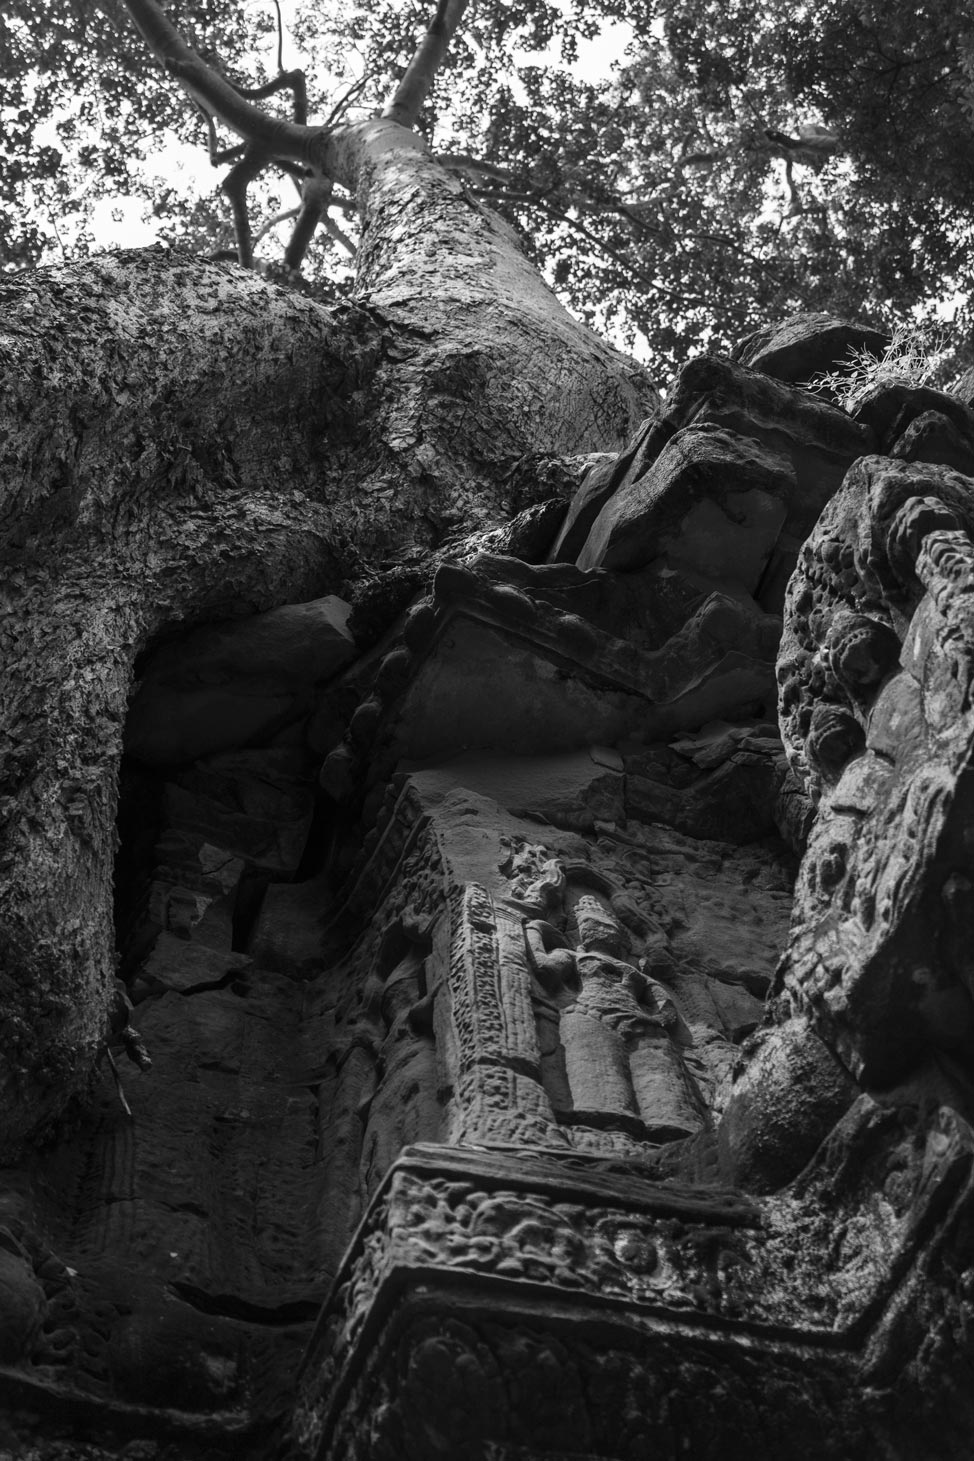 Temples-of-Angkor-21